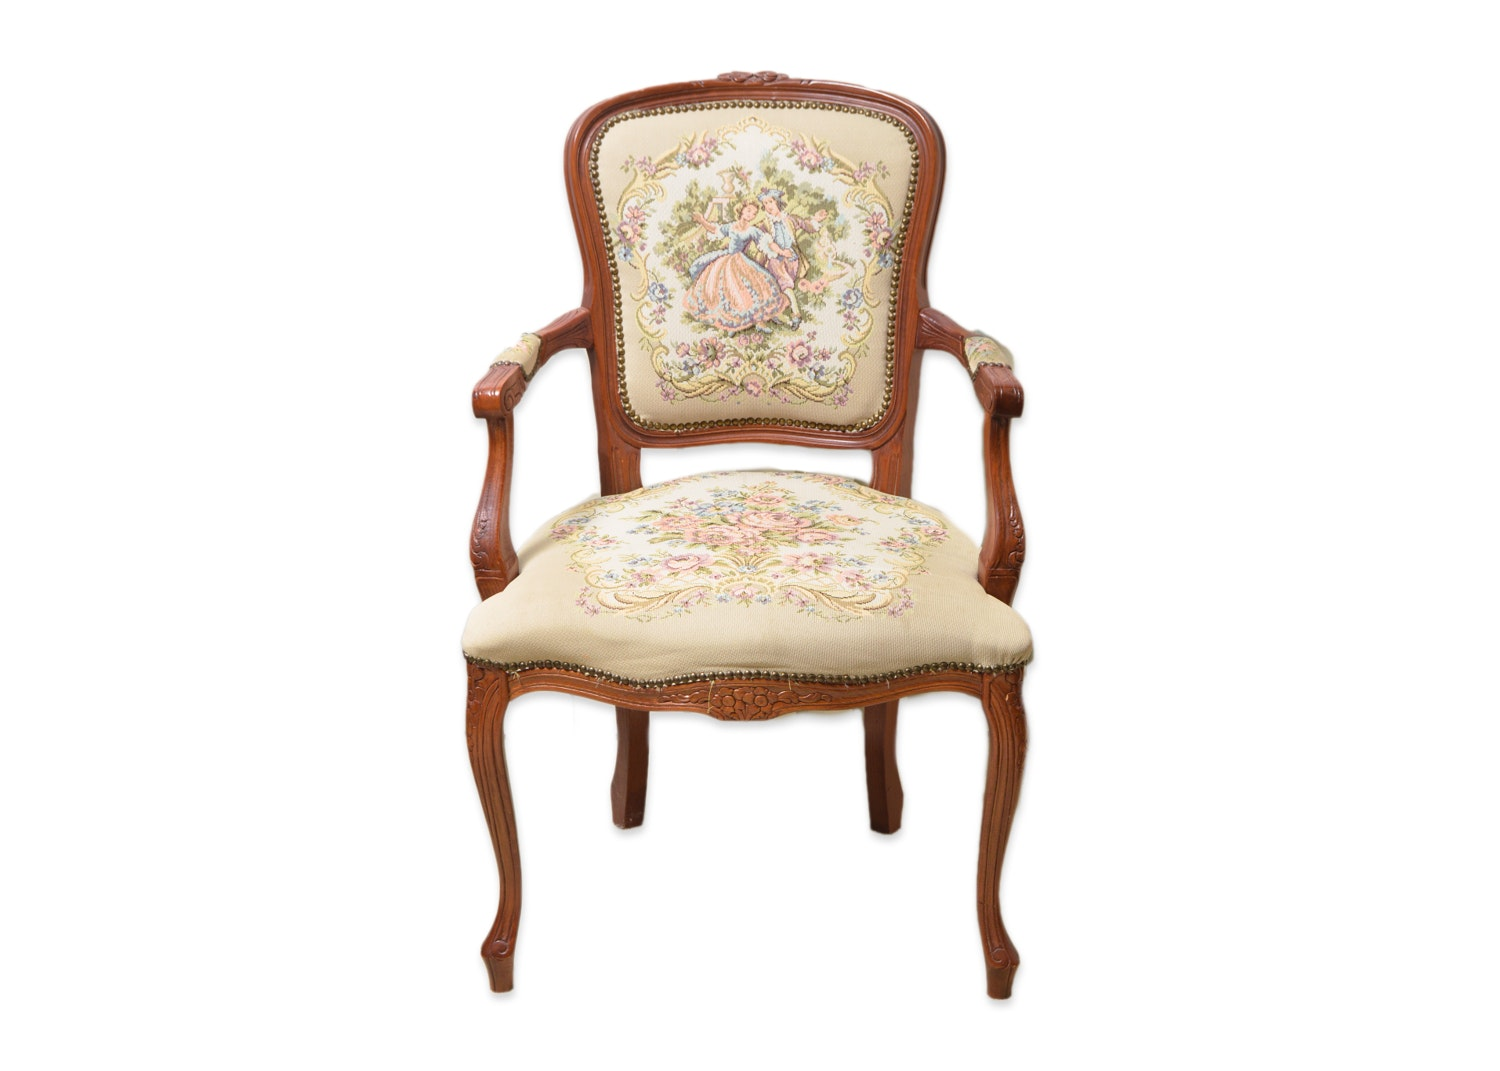 Vintage Victorian Style Walnut Armchair with Needlepoint Upholstery